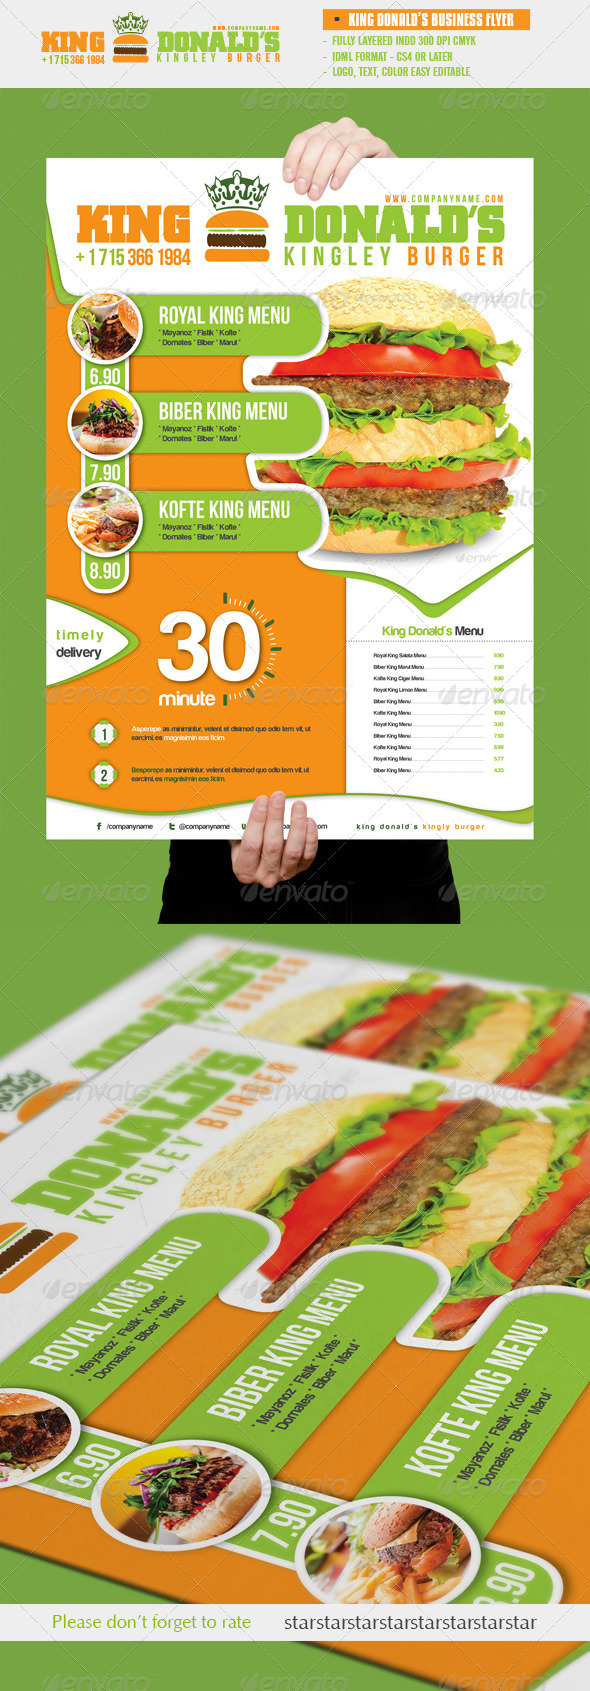 King Donald's Burger Flyer - Restaurant Flyers